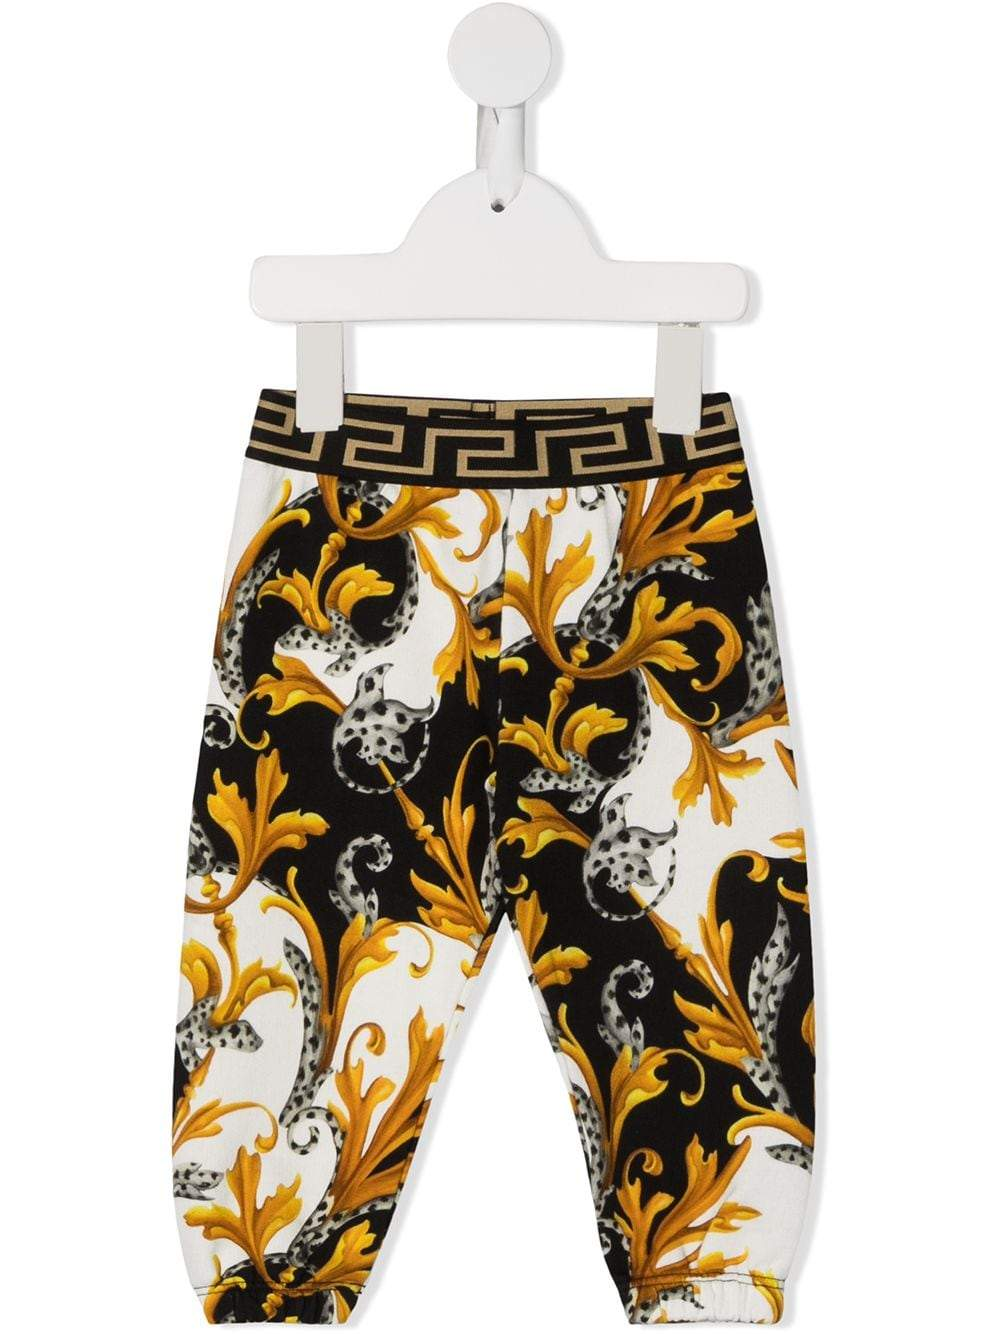 VERSACE KIDS Baby Baroque Print Waistband Leggins White/Gold